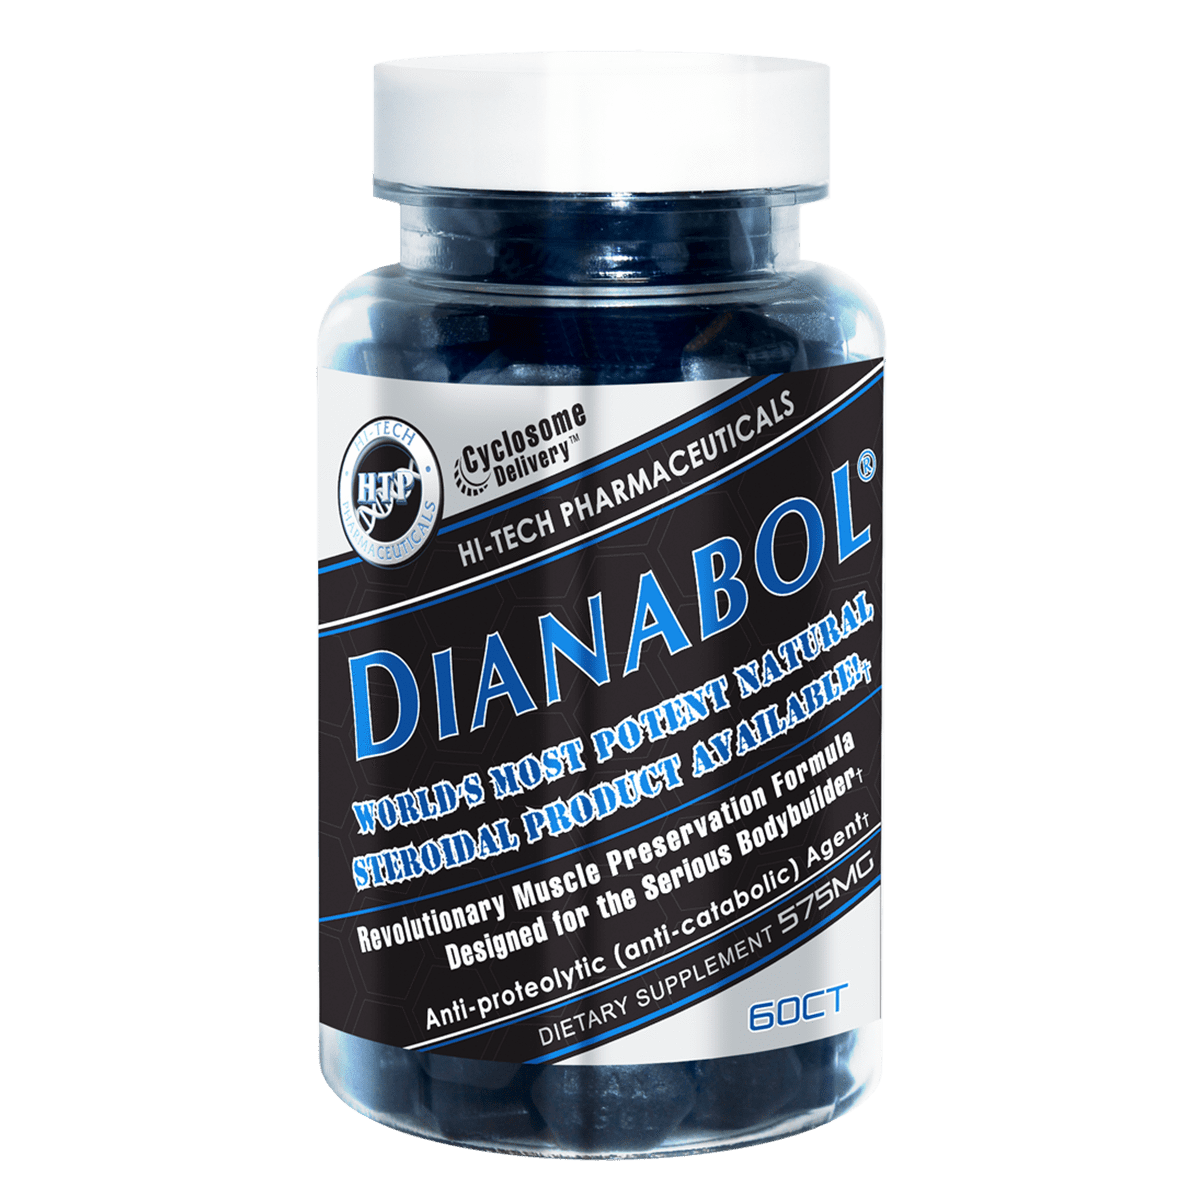 Dianabol Cycle - Beginners, Intermediate & Advanced Guides